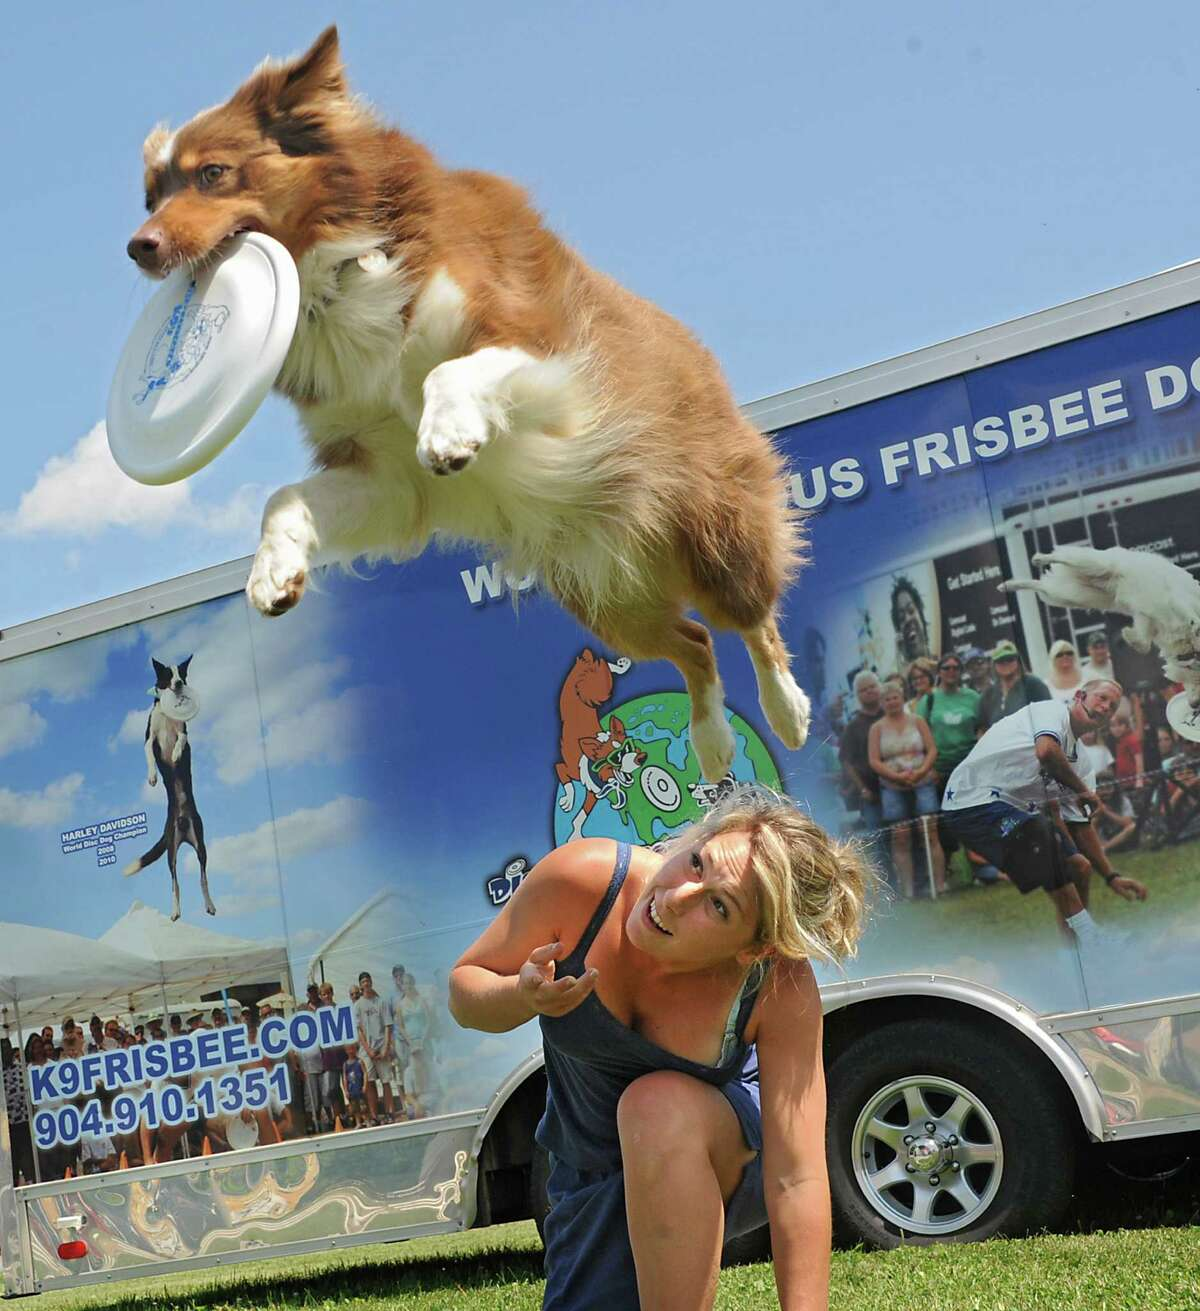 Marina Fangareggi of Italy takes a break from setting up to play frisbee with Australian Shepard Jolie at the Altamont Fair on Sunday, Aug. 10, 2014 in Altamont, N.Y. Marina and Jolie are with Disc Connected K9's world famous frisbee dogs attraction. The fair runs Aug. 12-17. (Lori Van Buren / Times Union)